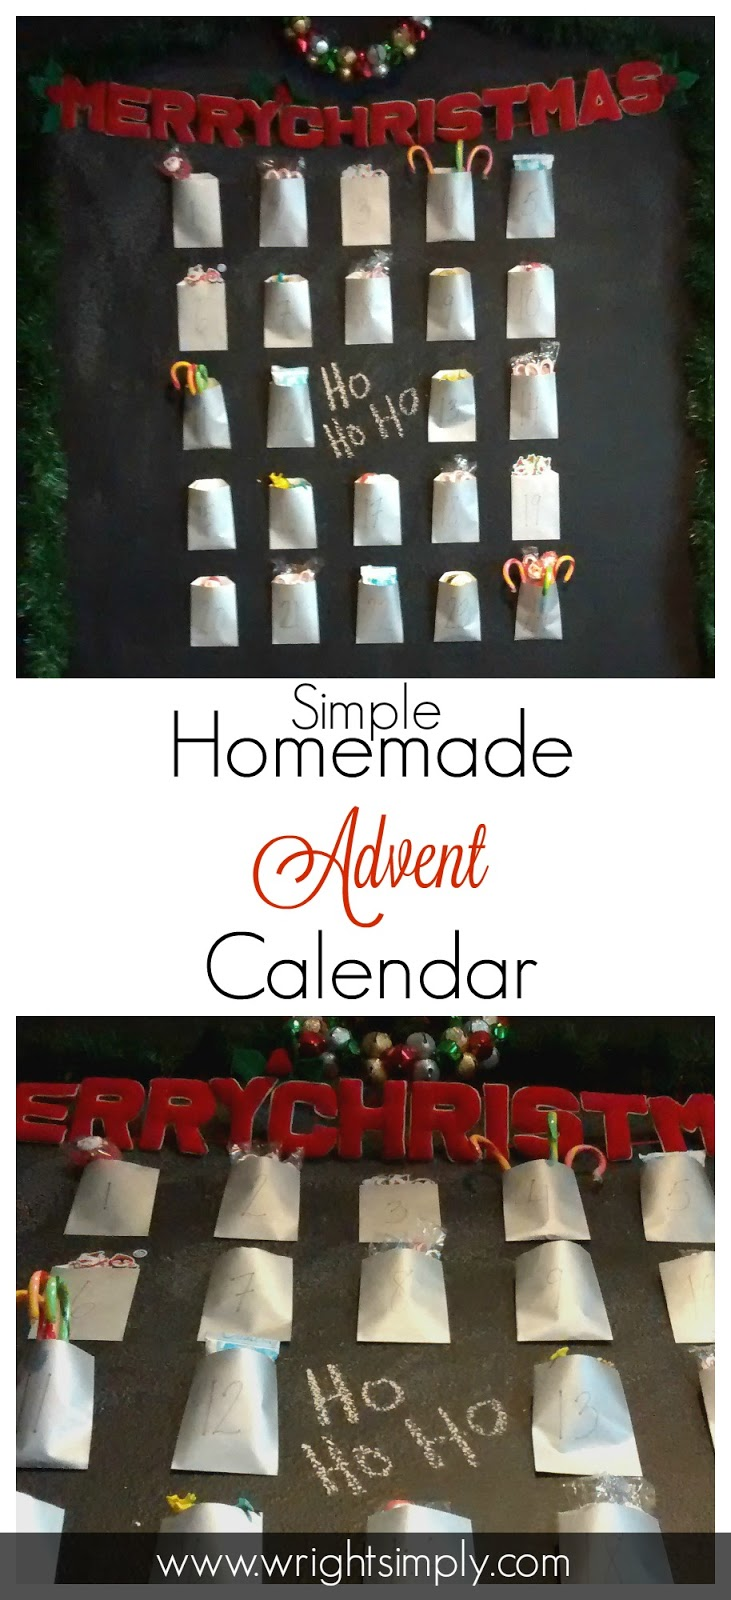 Homemade Calendar With Pictures : Simply wright simple homemade advent calendar